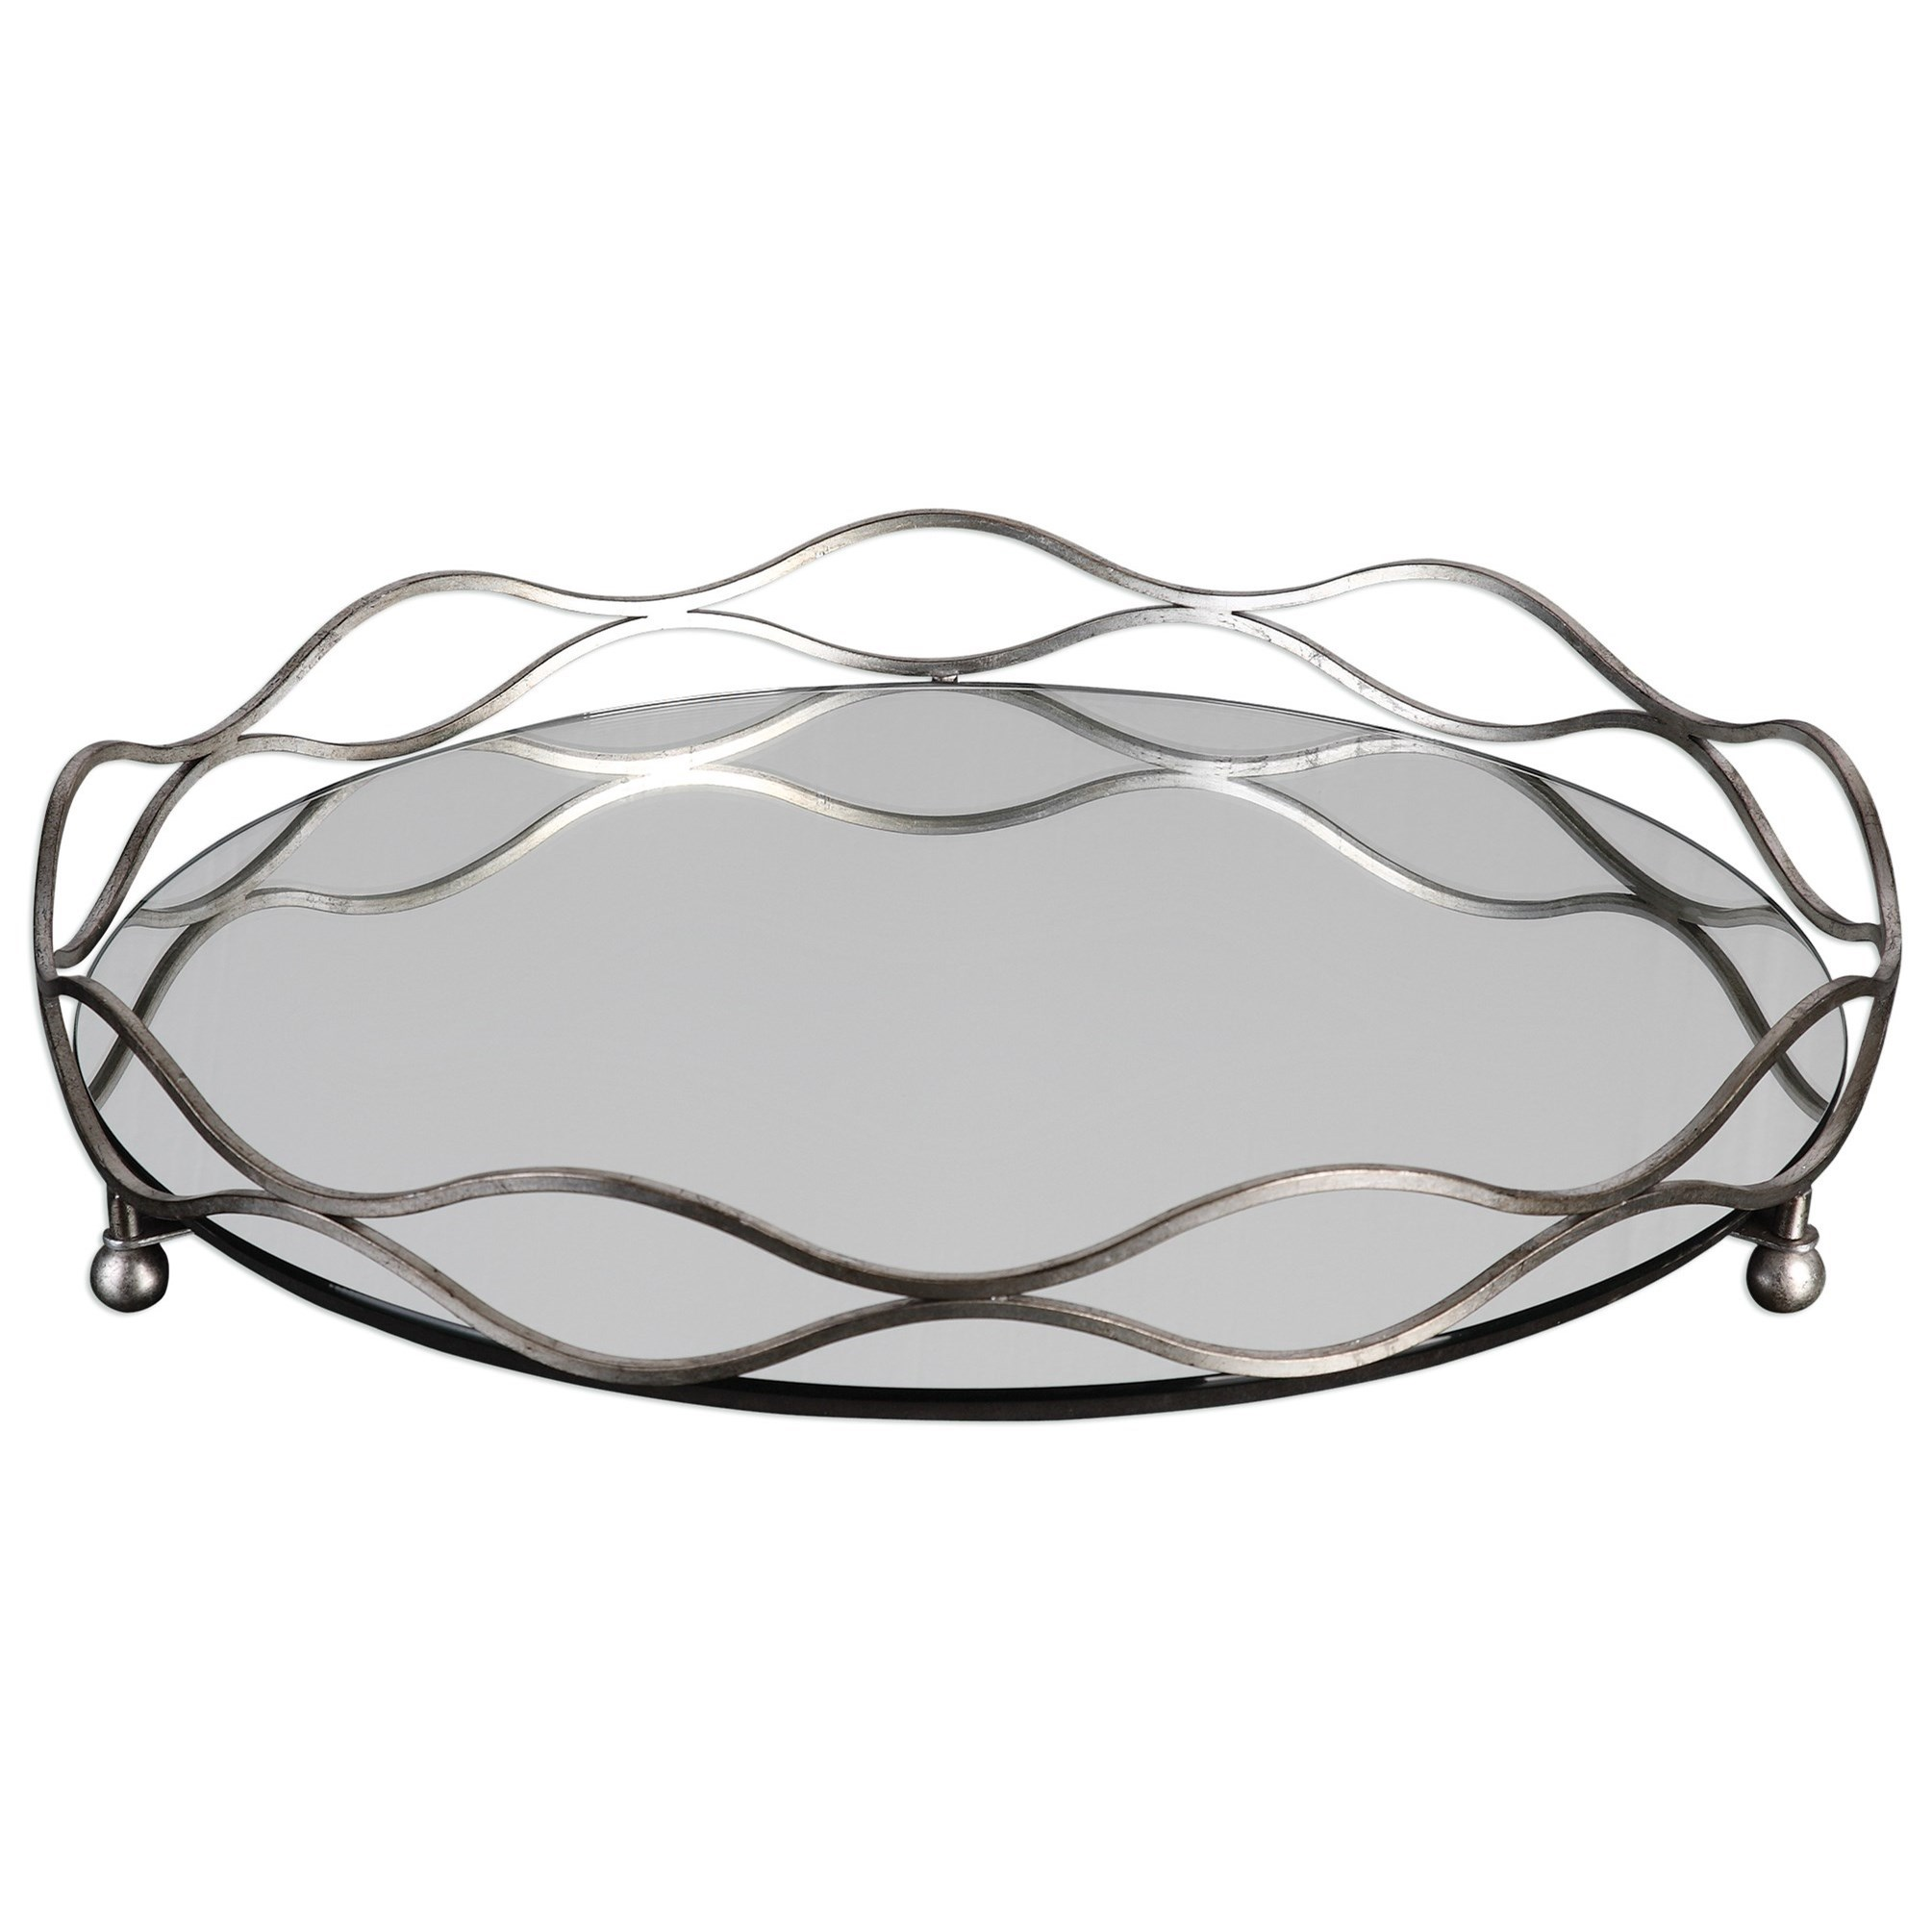 Accessories Rachele Tray by Uttermost at Dunk & Bright Furniture